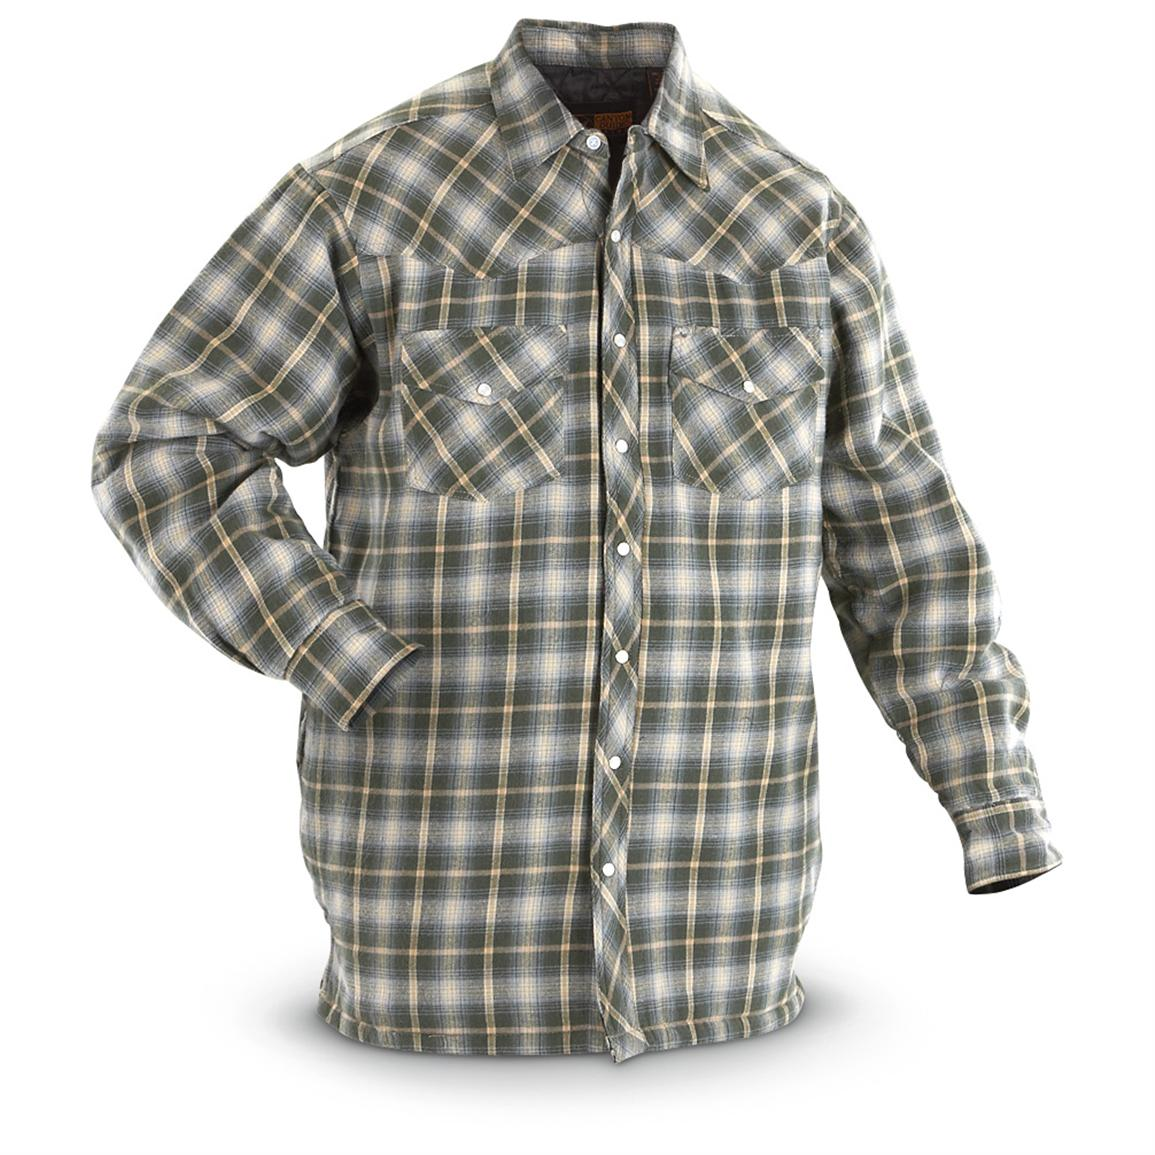 Quilted flannel shirt jacket outdoor jacket for Men flannel shirt jacket with quilted lining